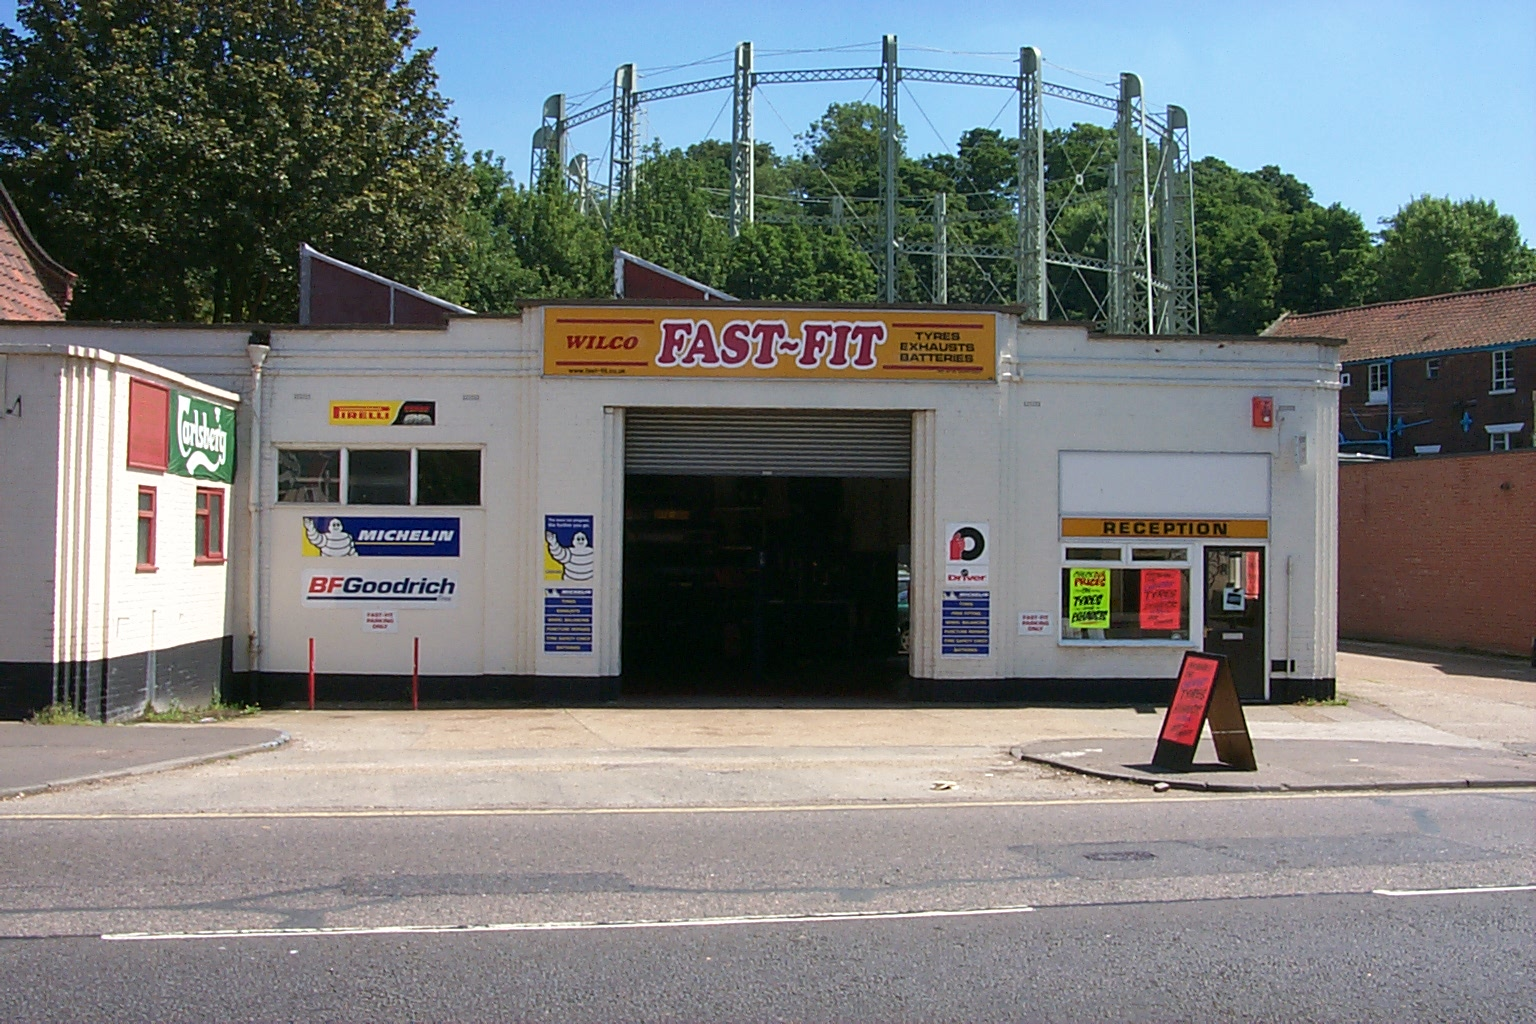 Fast-Fit Tyres & Exhausts - Norwich, Norfolk NR1 1SR - 01603 613689 | ShowMeLocal.com